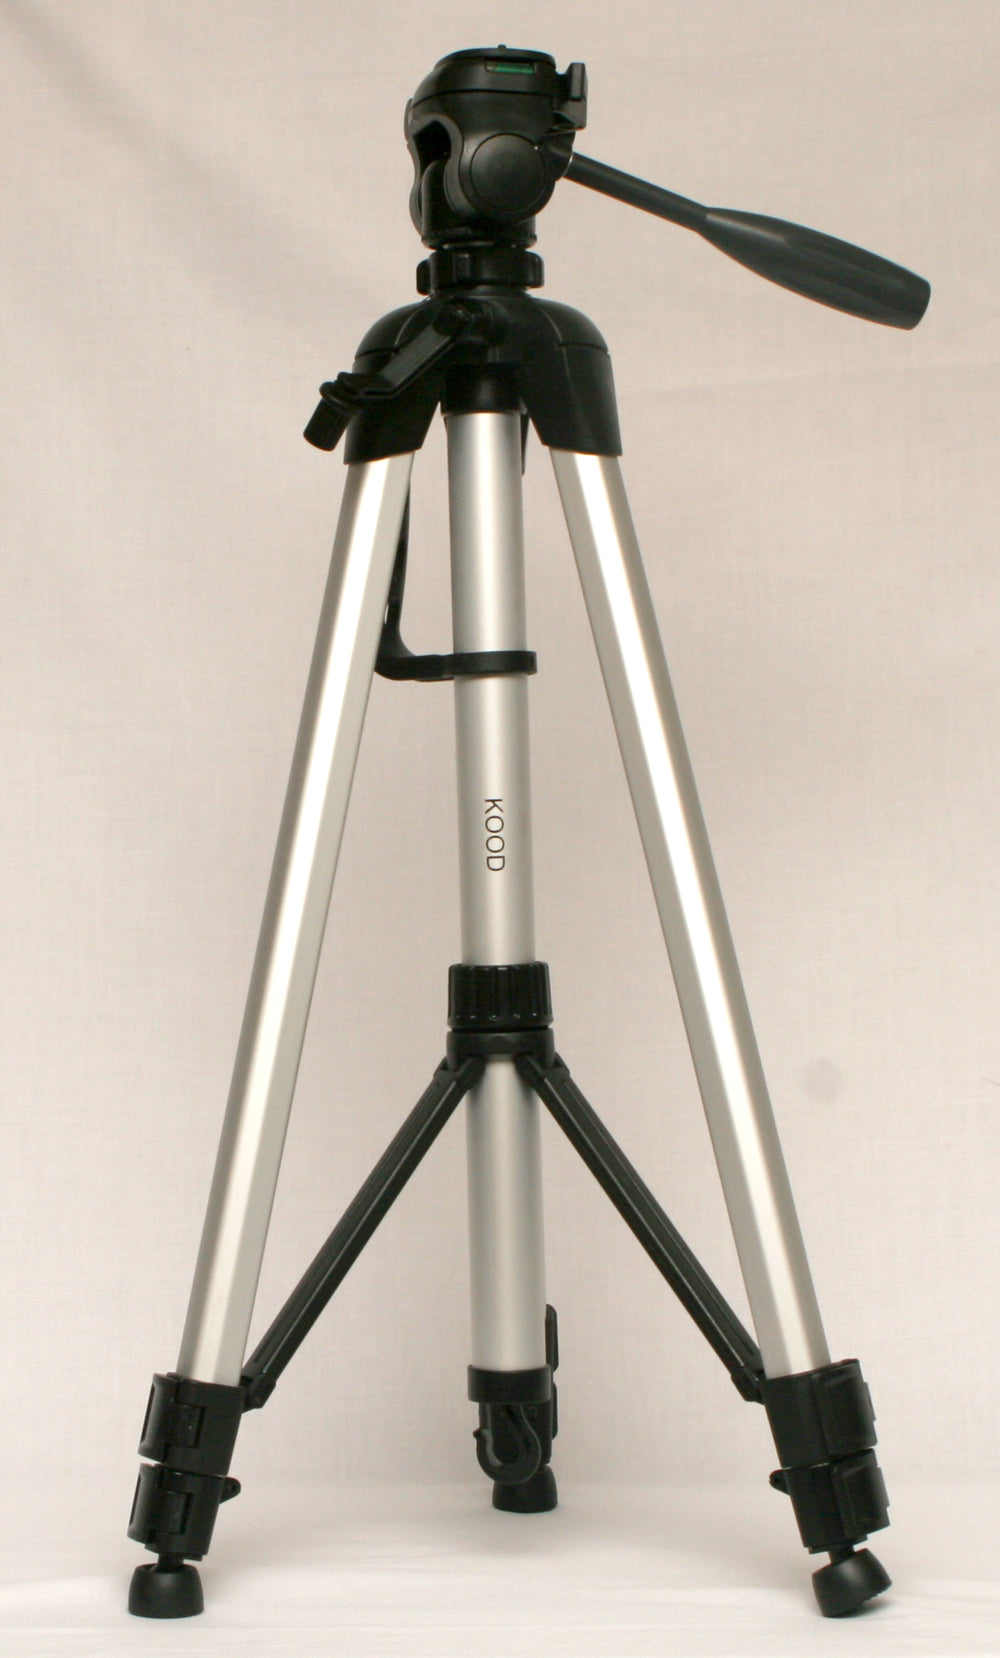 Kood AT26 Tripod with Case